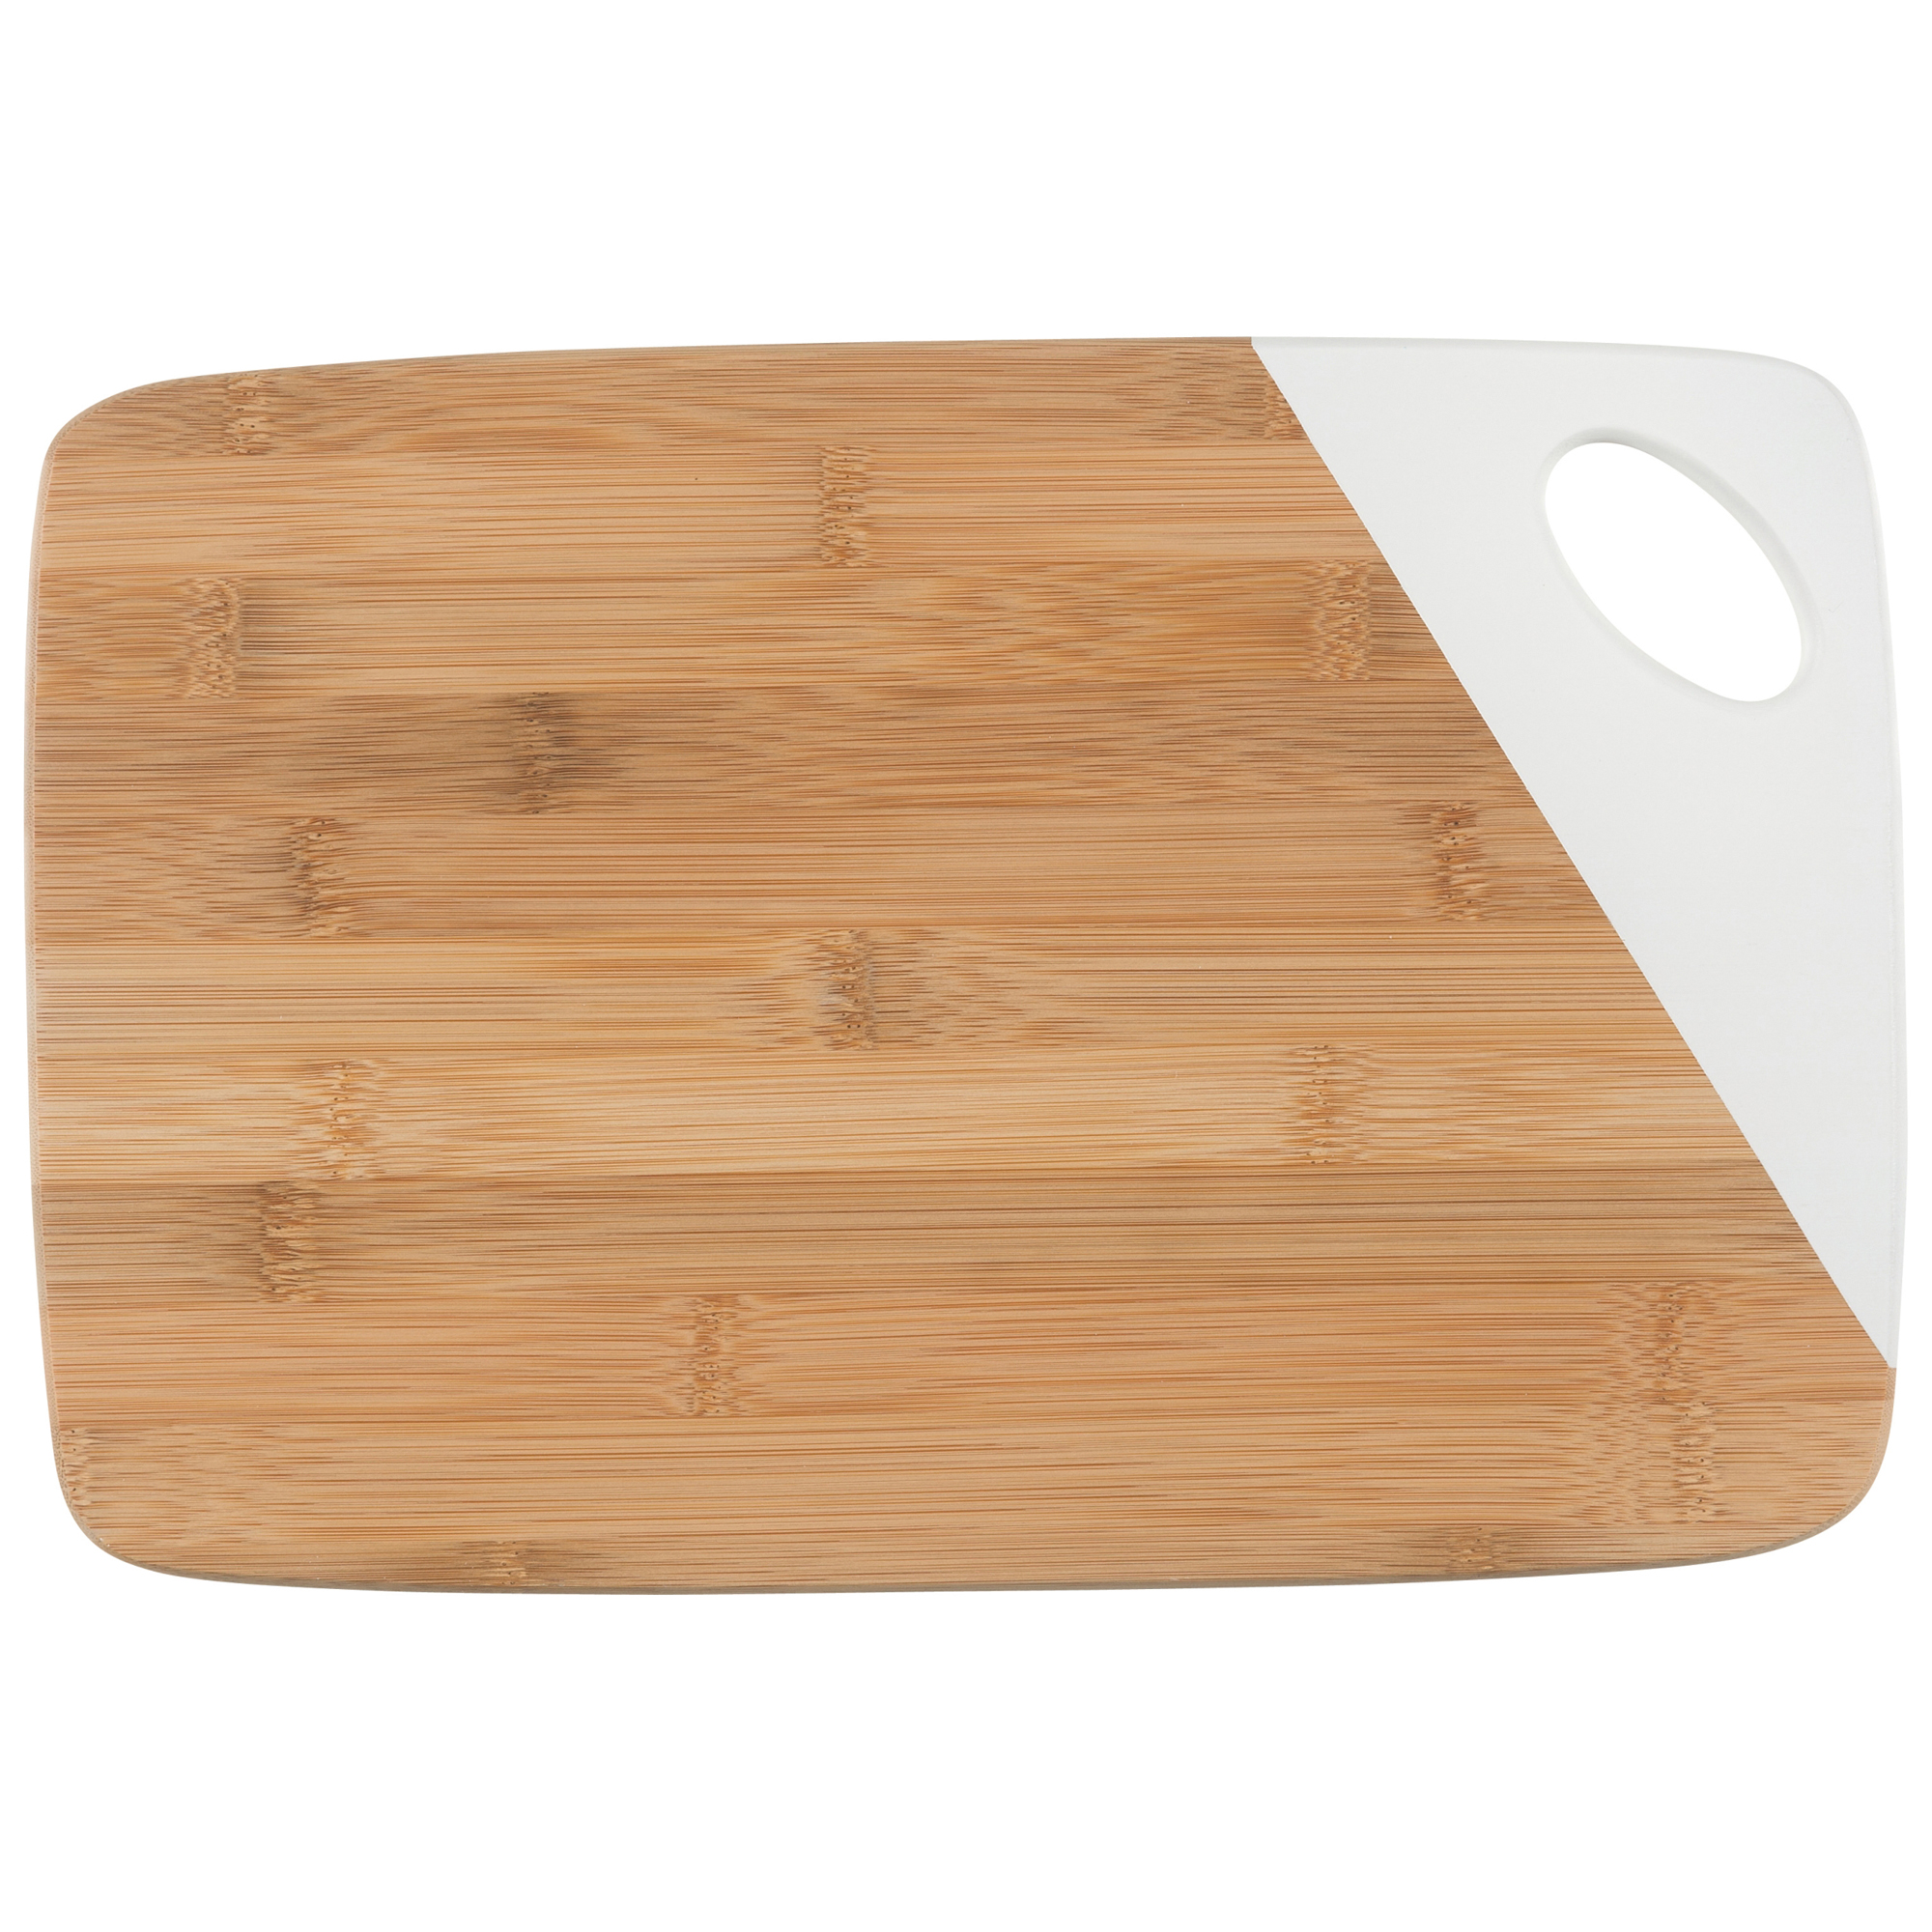 Now Designs Cutting Board, Dipped White